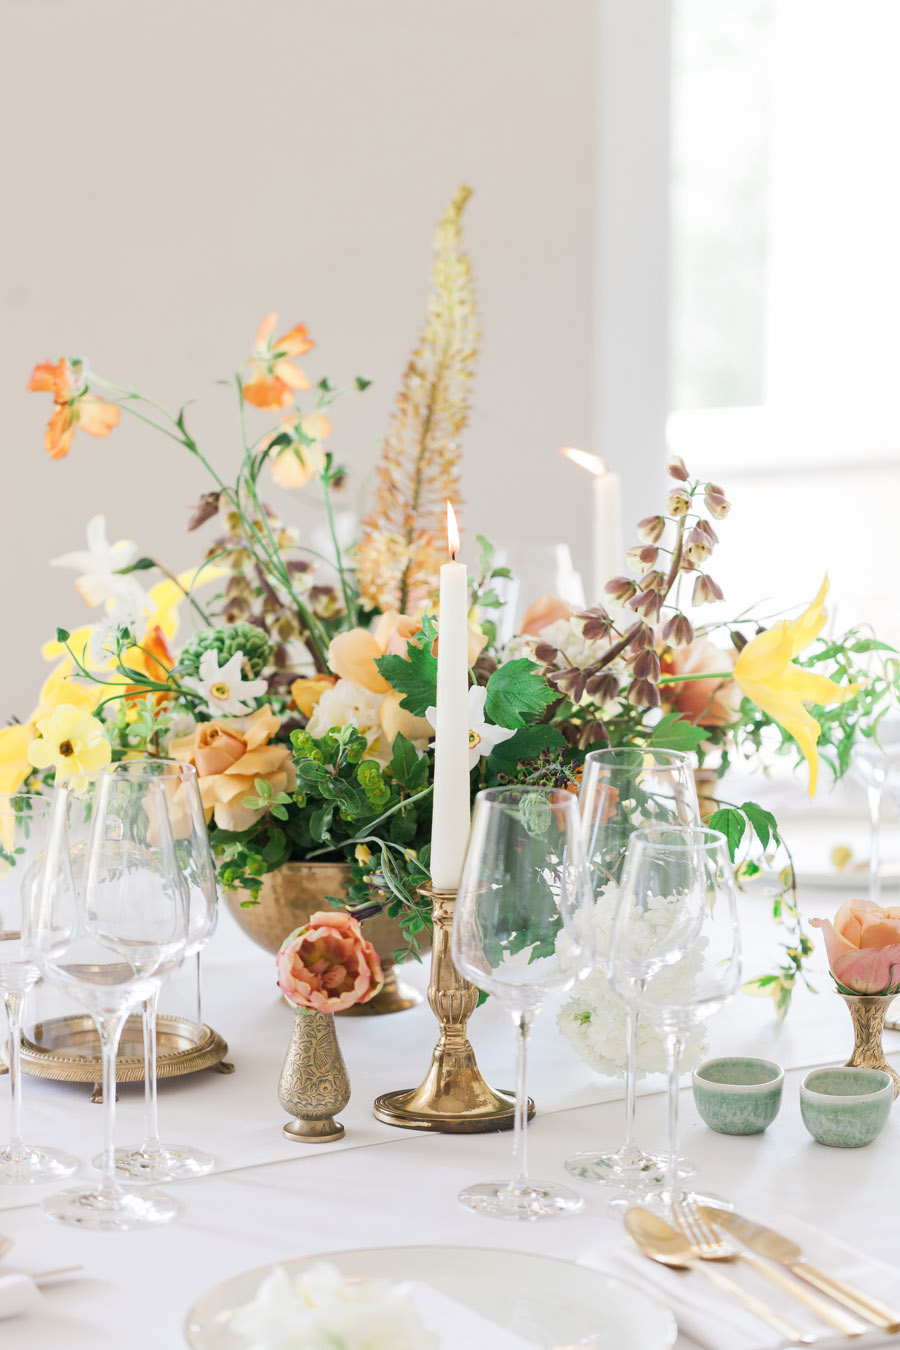 Glorious yellow Bloomologie blooms and styling by Chenai - photo credit Amanda Karen Photography (14)